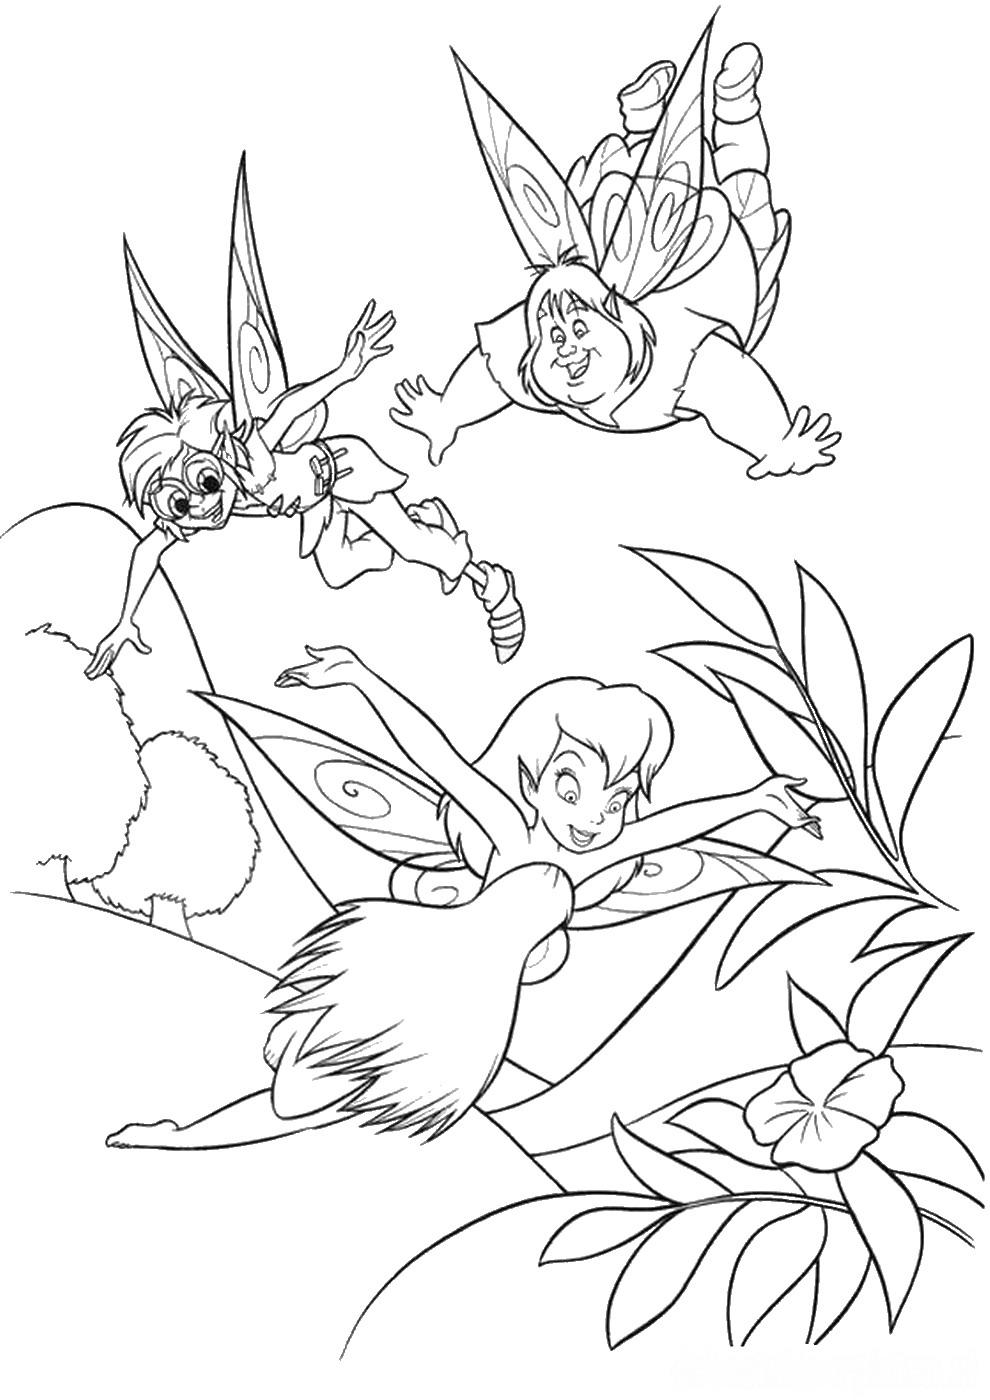 tinkerbell pictures to color tinkerbell coloring pages minister coloring color to tinkerbell pictures